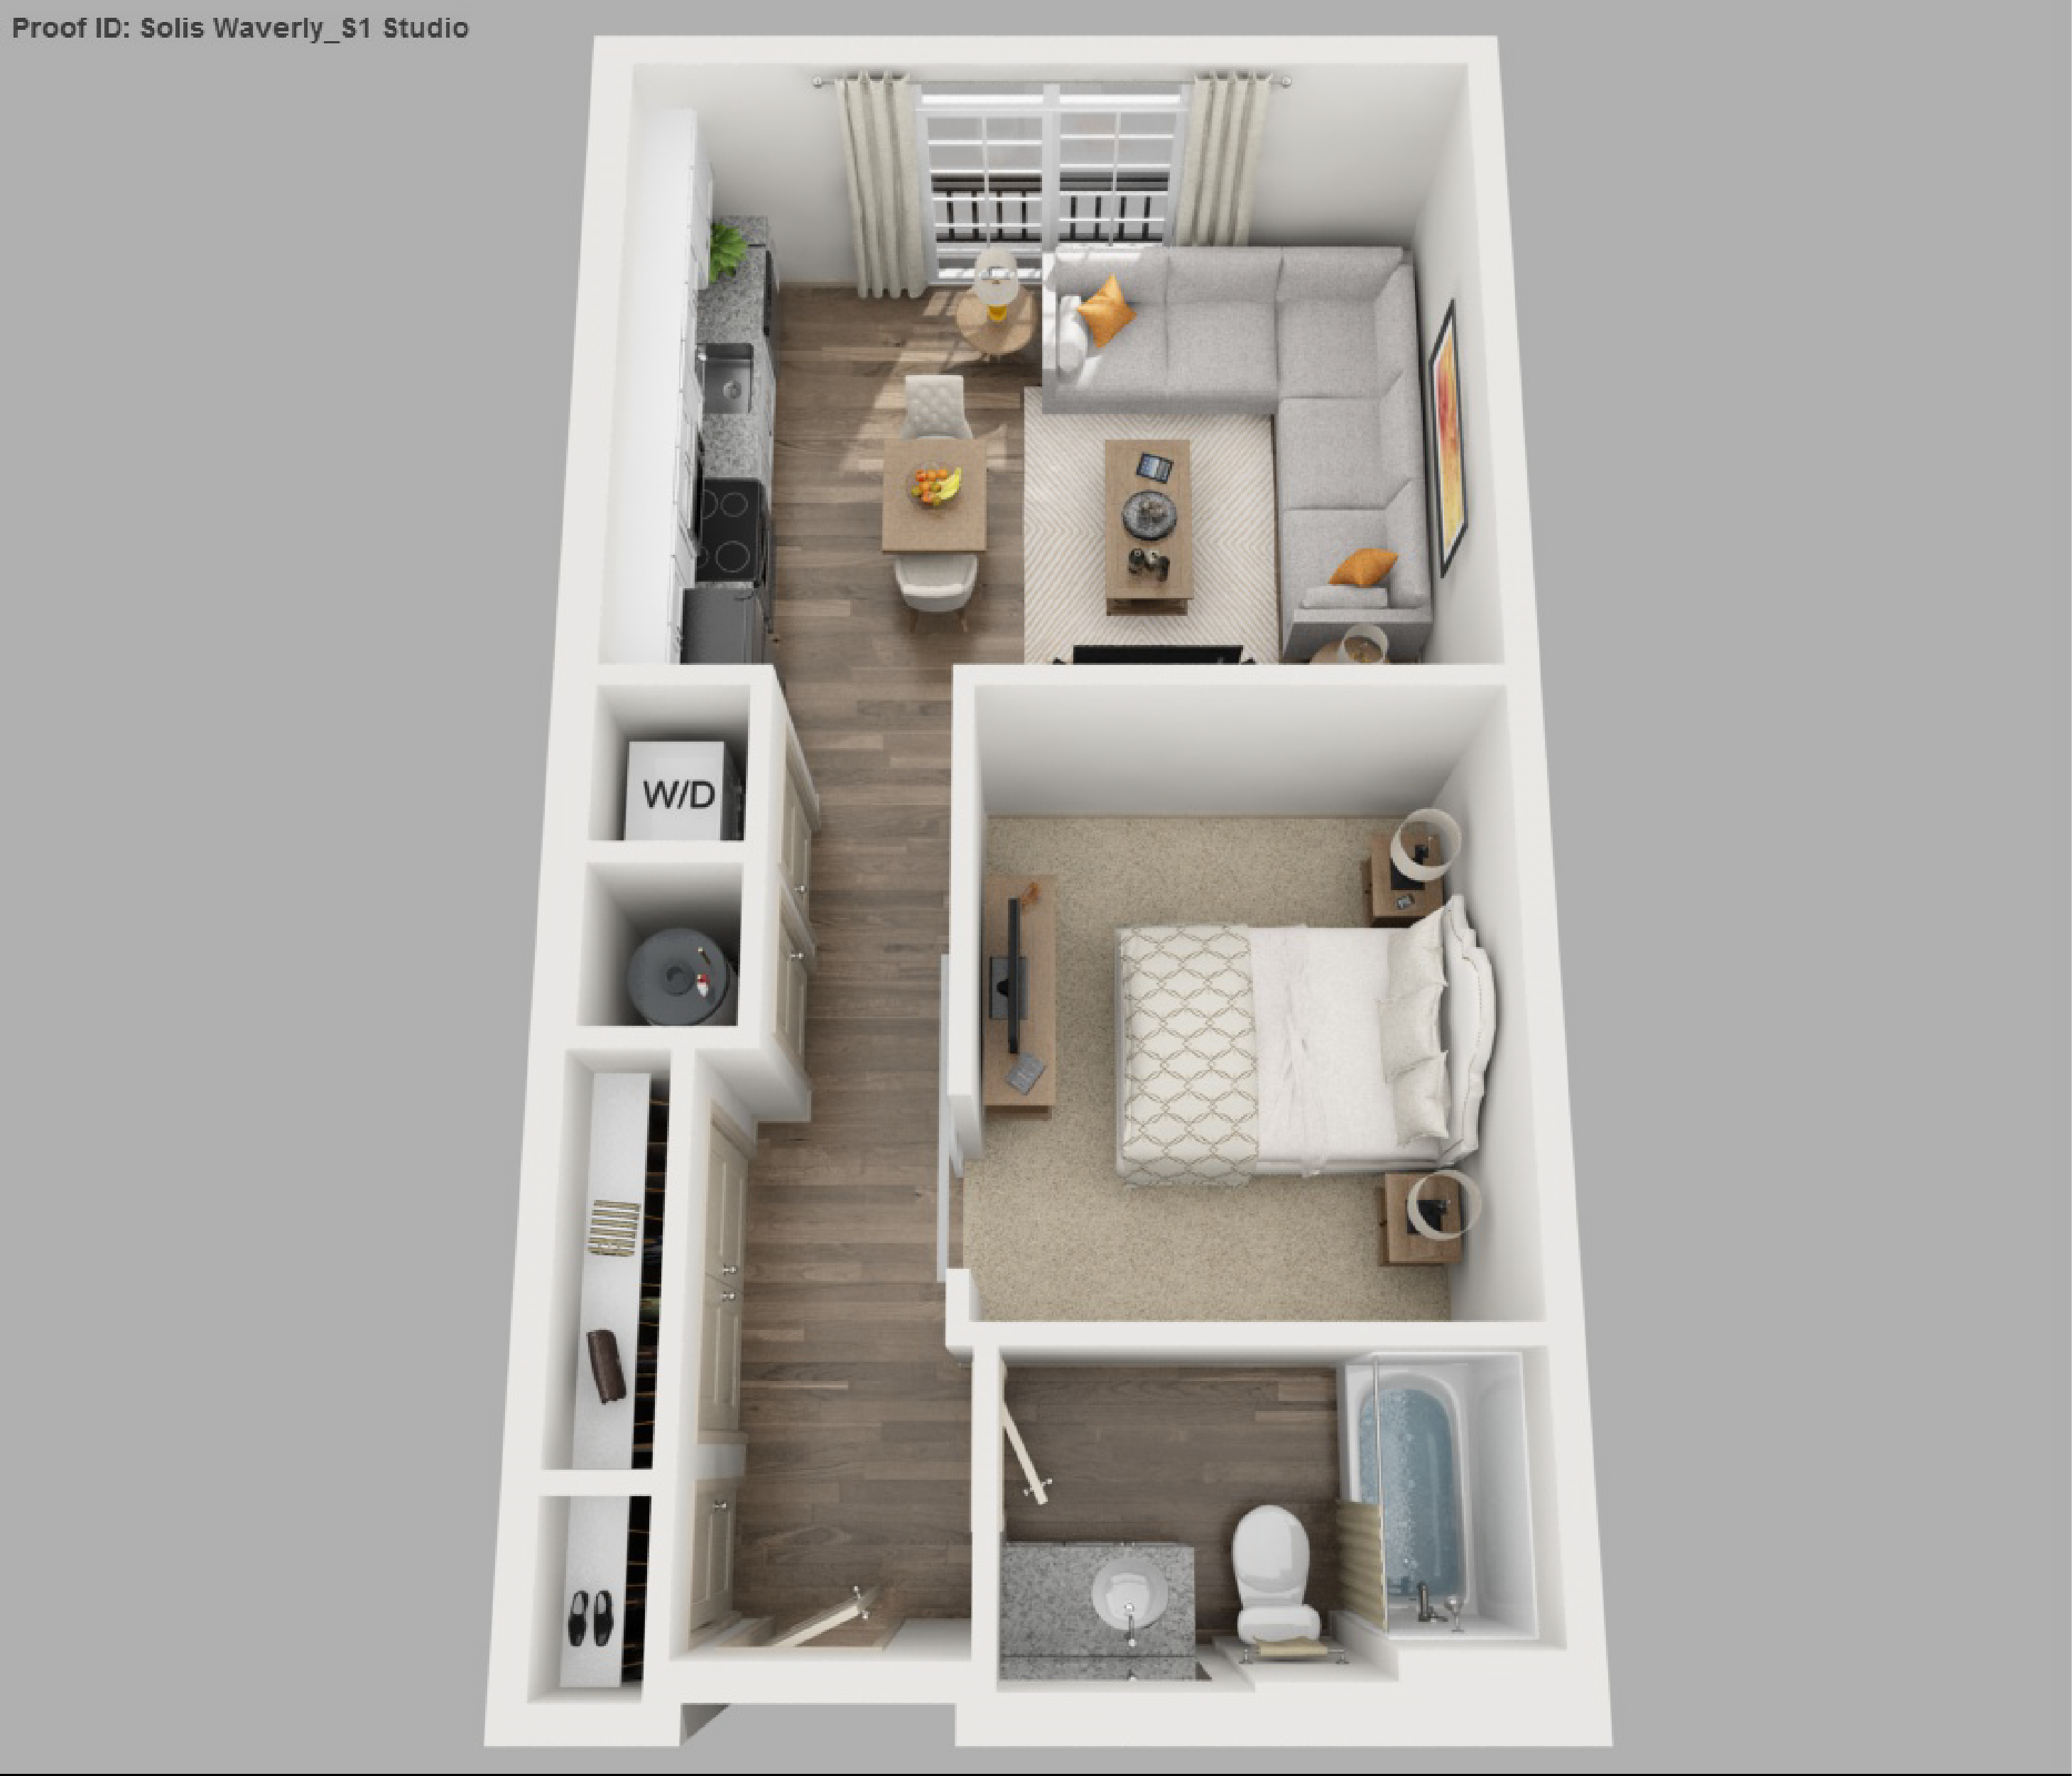 3 Bedroom Layout Plan